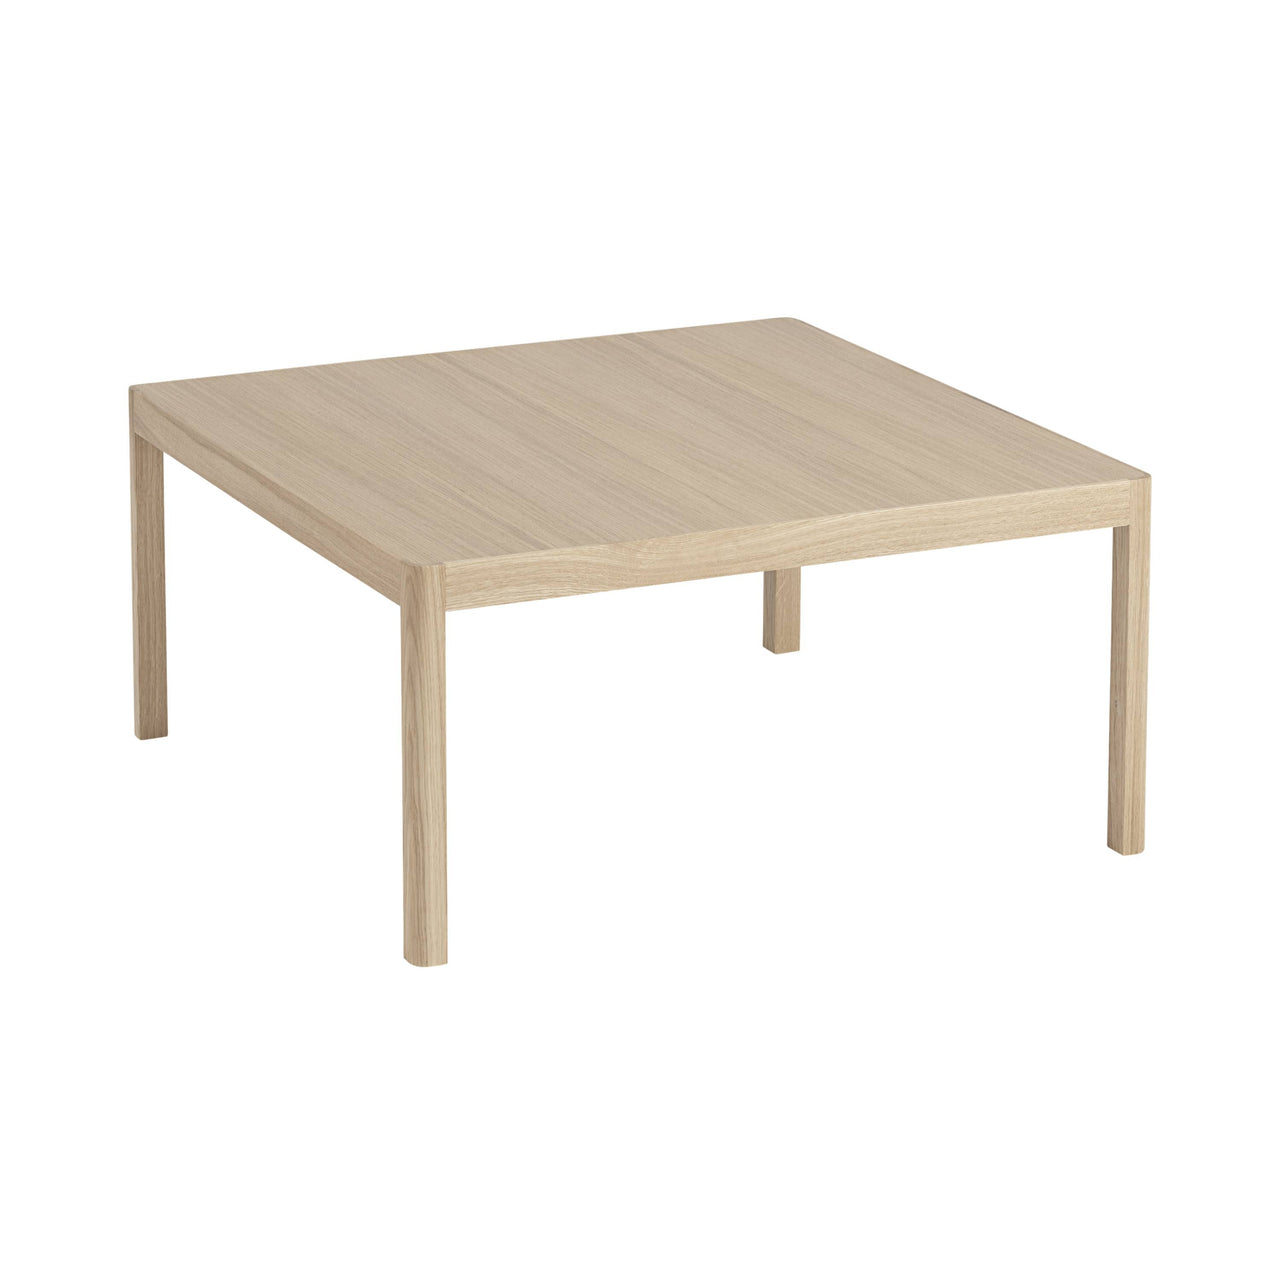 Workshop Coffee Table Square: Oak